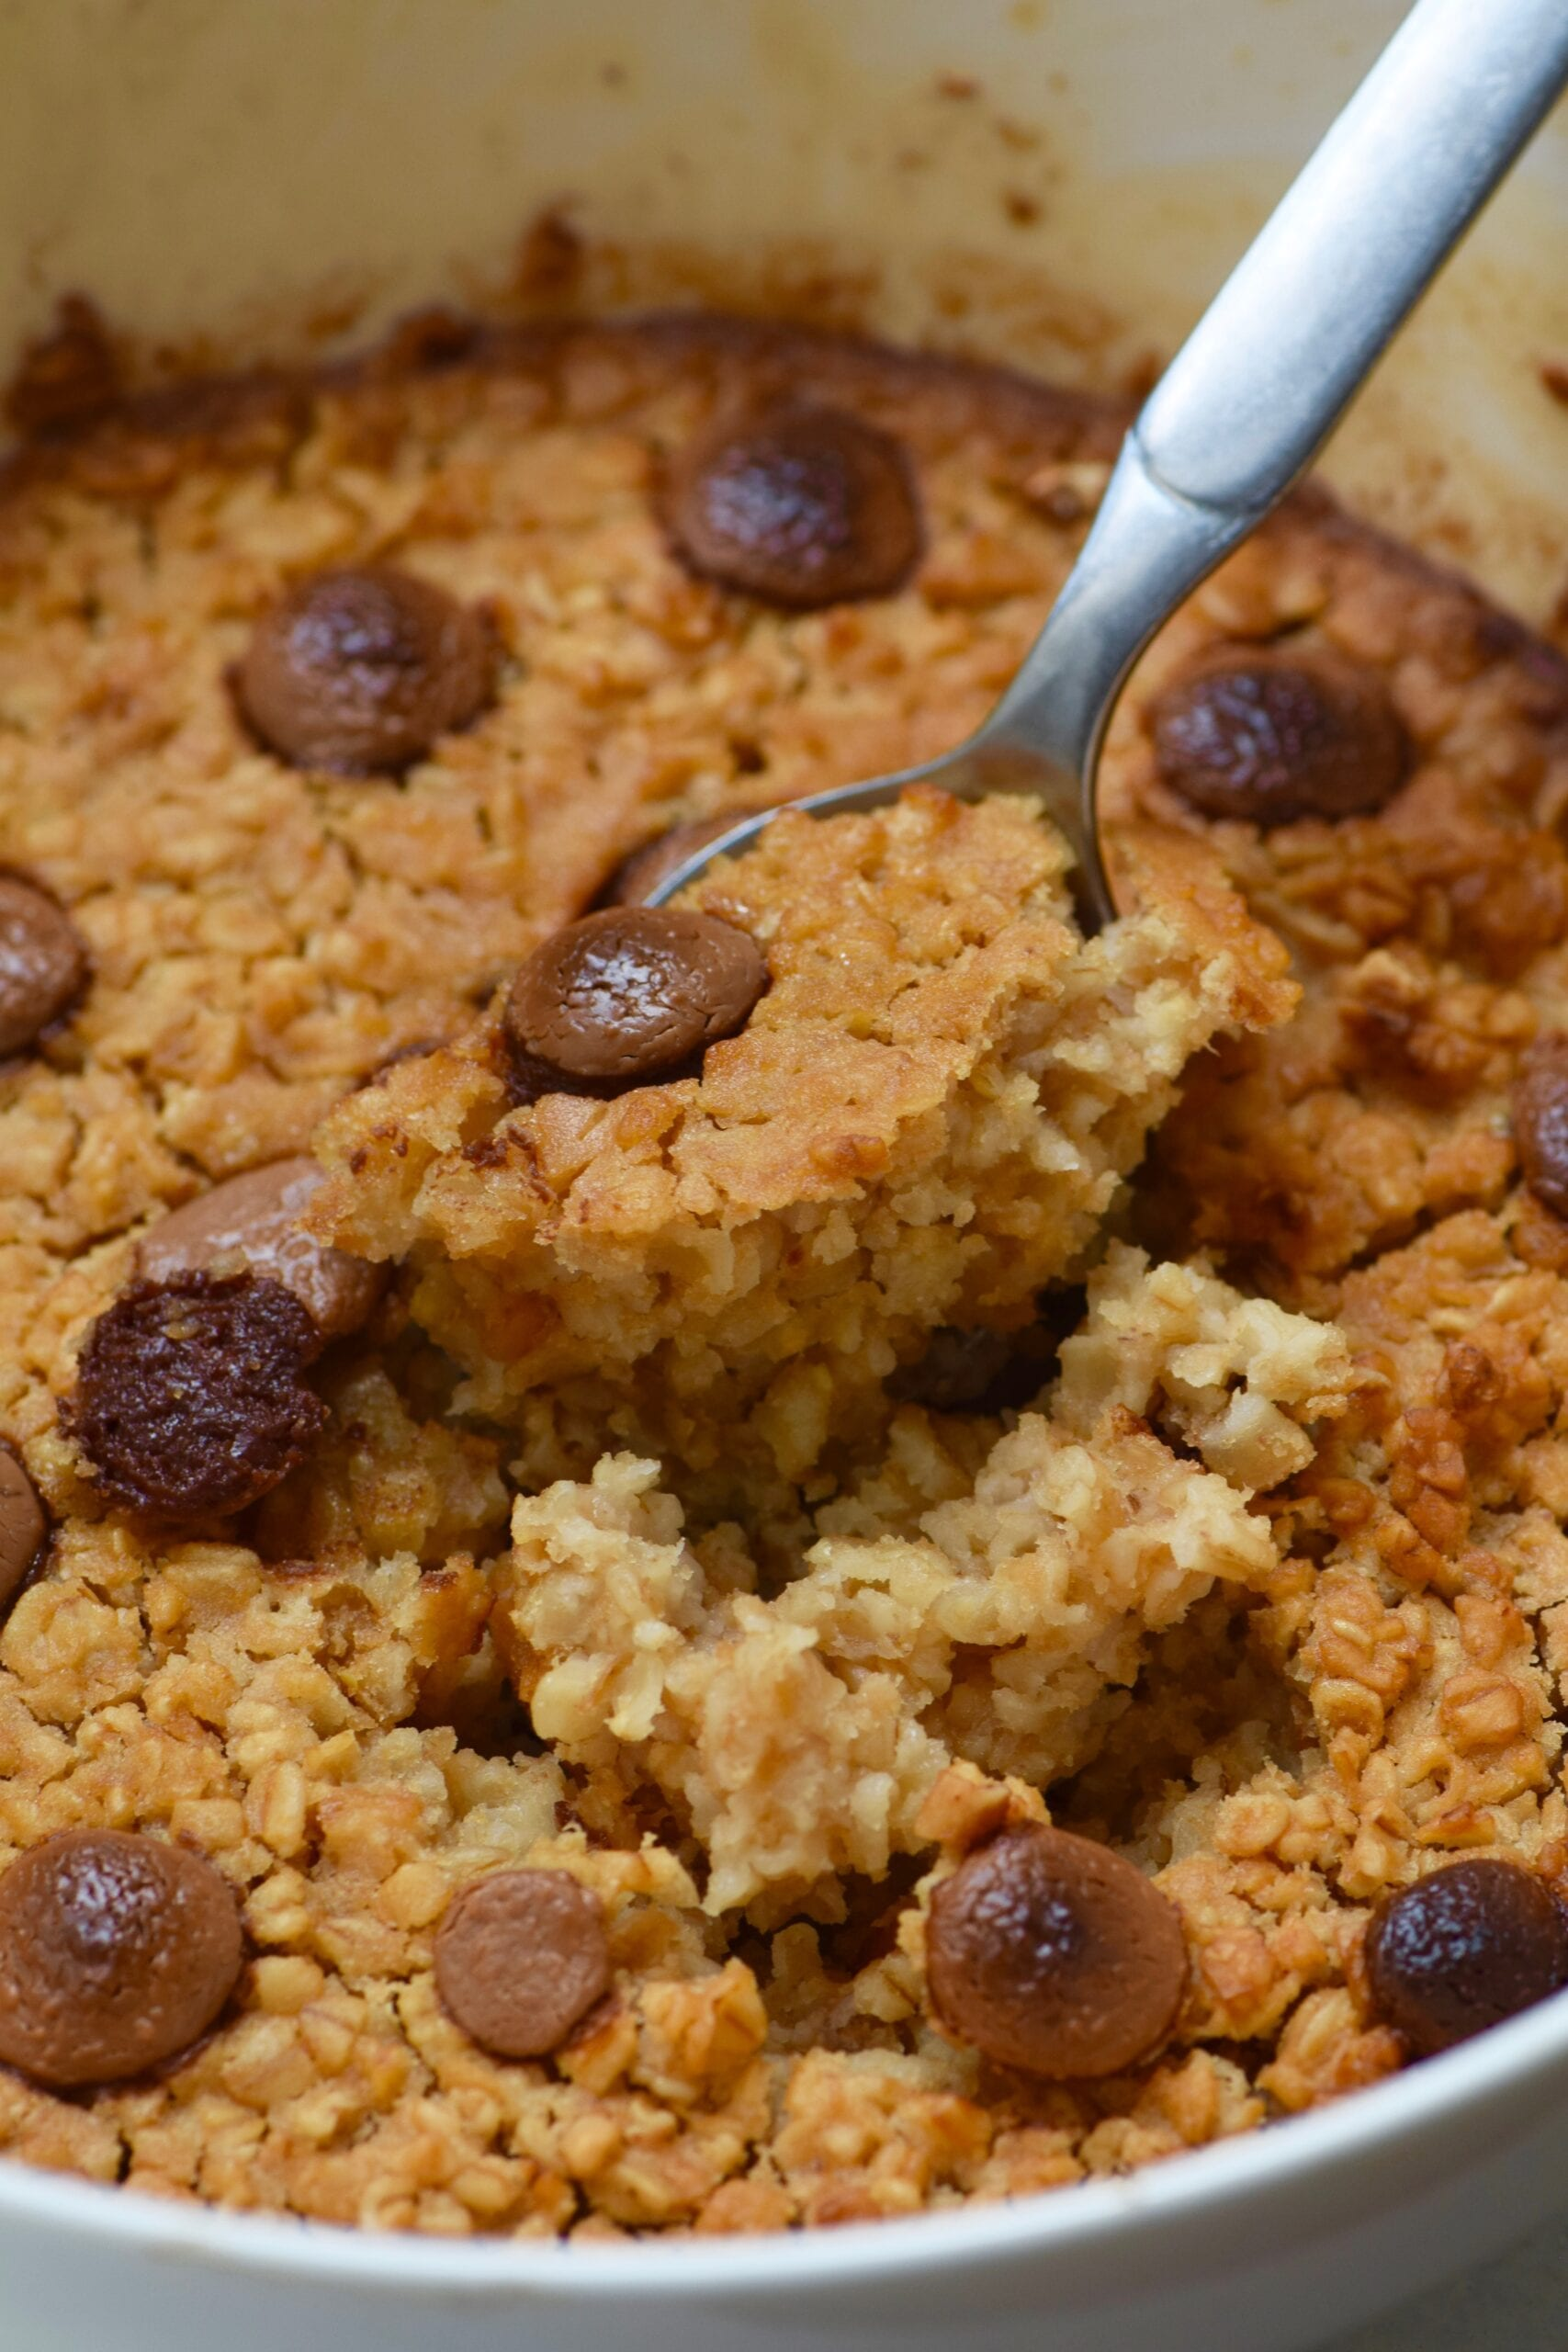 Spoon scooping chocolate chip baked oatmeal